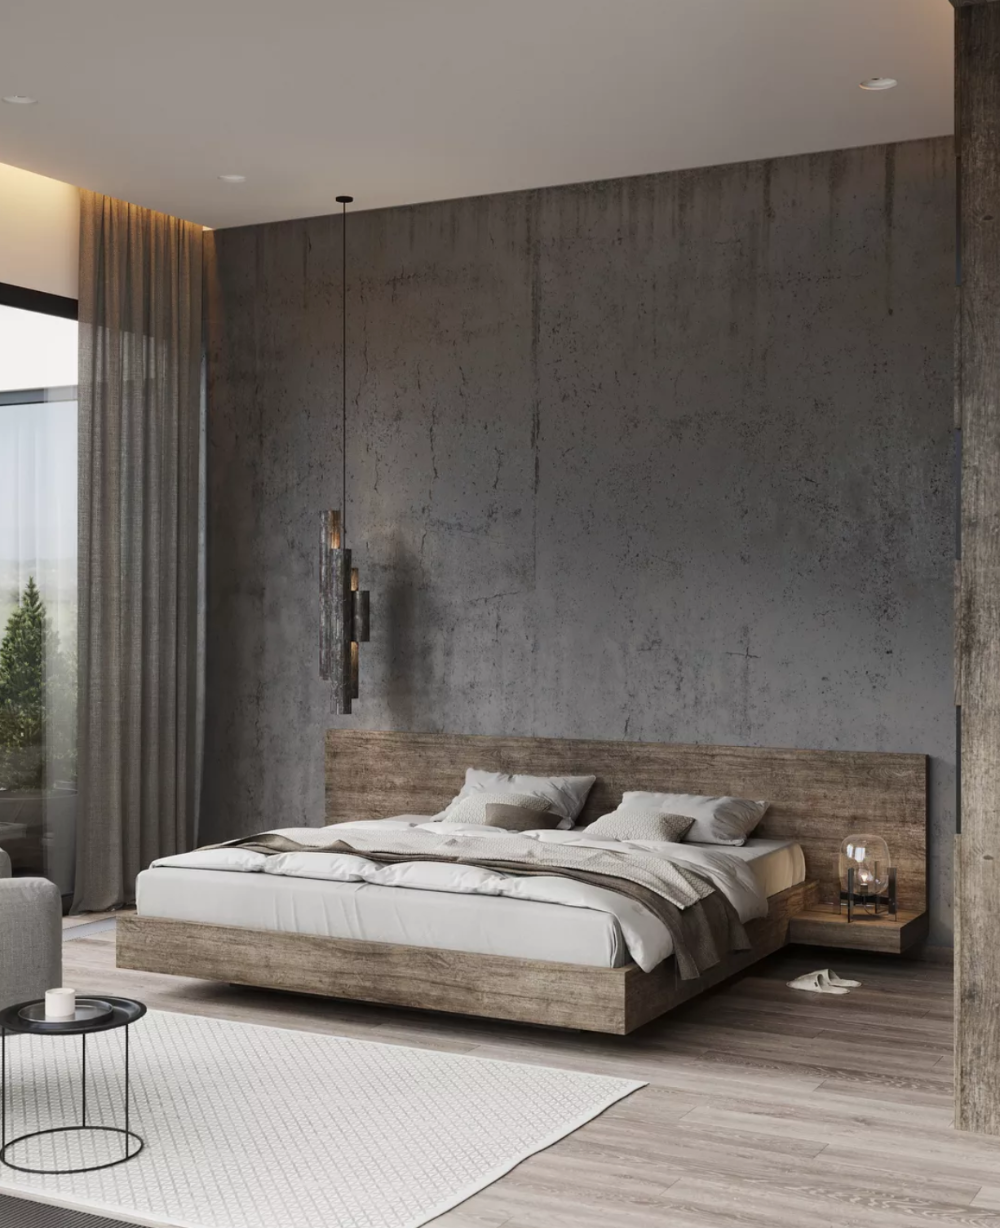 The 15 Most Beautiful Master Bedrooms On Pinterest Sanctuary Home Decor In 2020 Modern Master Bedroom Beautiful Bedrooms Master Bedroom Interior